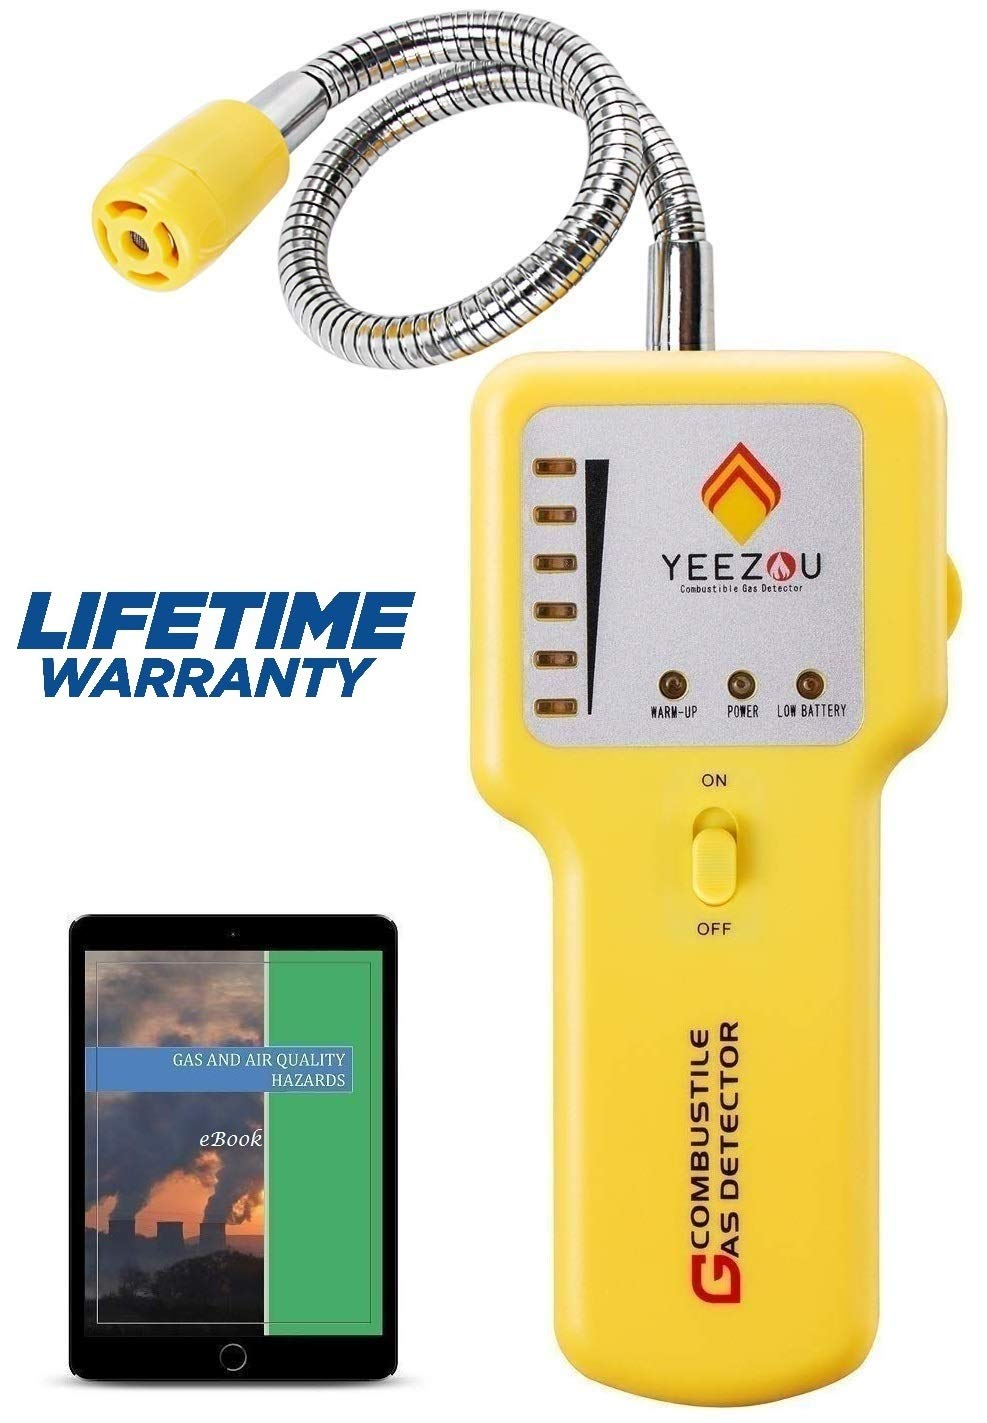 Y201 Propane and Natural Gas Leak Detector; Portable Gas Sniffer to Locate Gas Leaks of Combustible Gases like Methane, LPG, LNG, Fuel, Sewer Gas; w/ Flexible Sensor Neck, Sound & LED Alarm, eBook